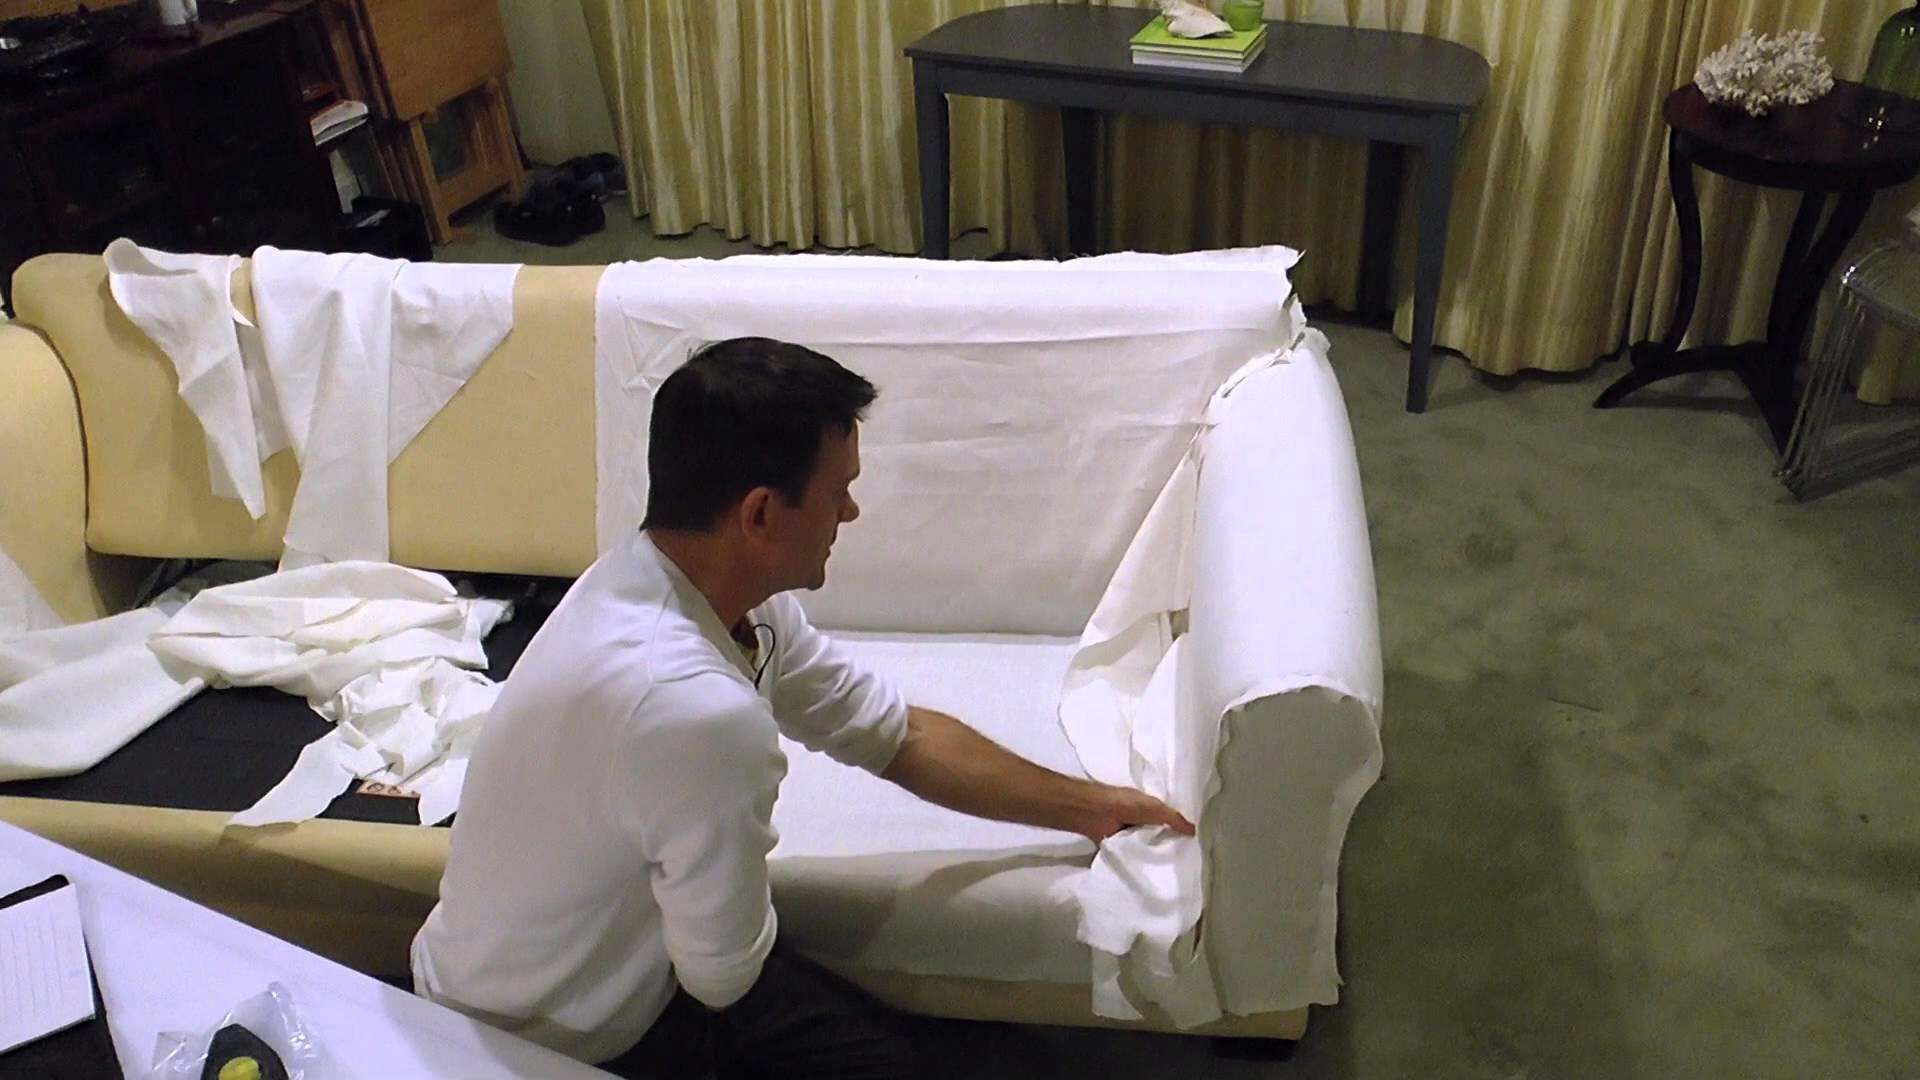 Sofa Bed Sheets Full | Sofa Gallery | Kengire Pertaining To Sofa Beds Sheets (Image 5 of 20)